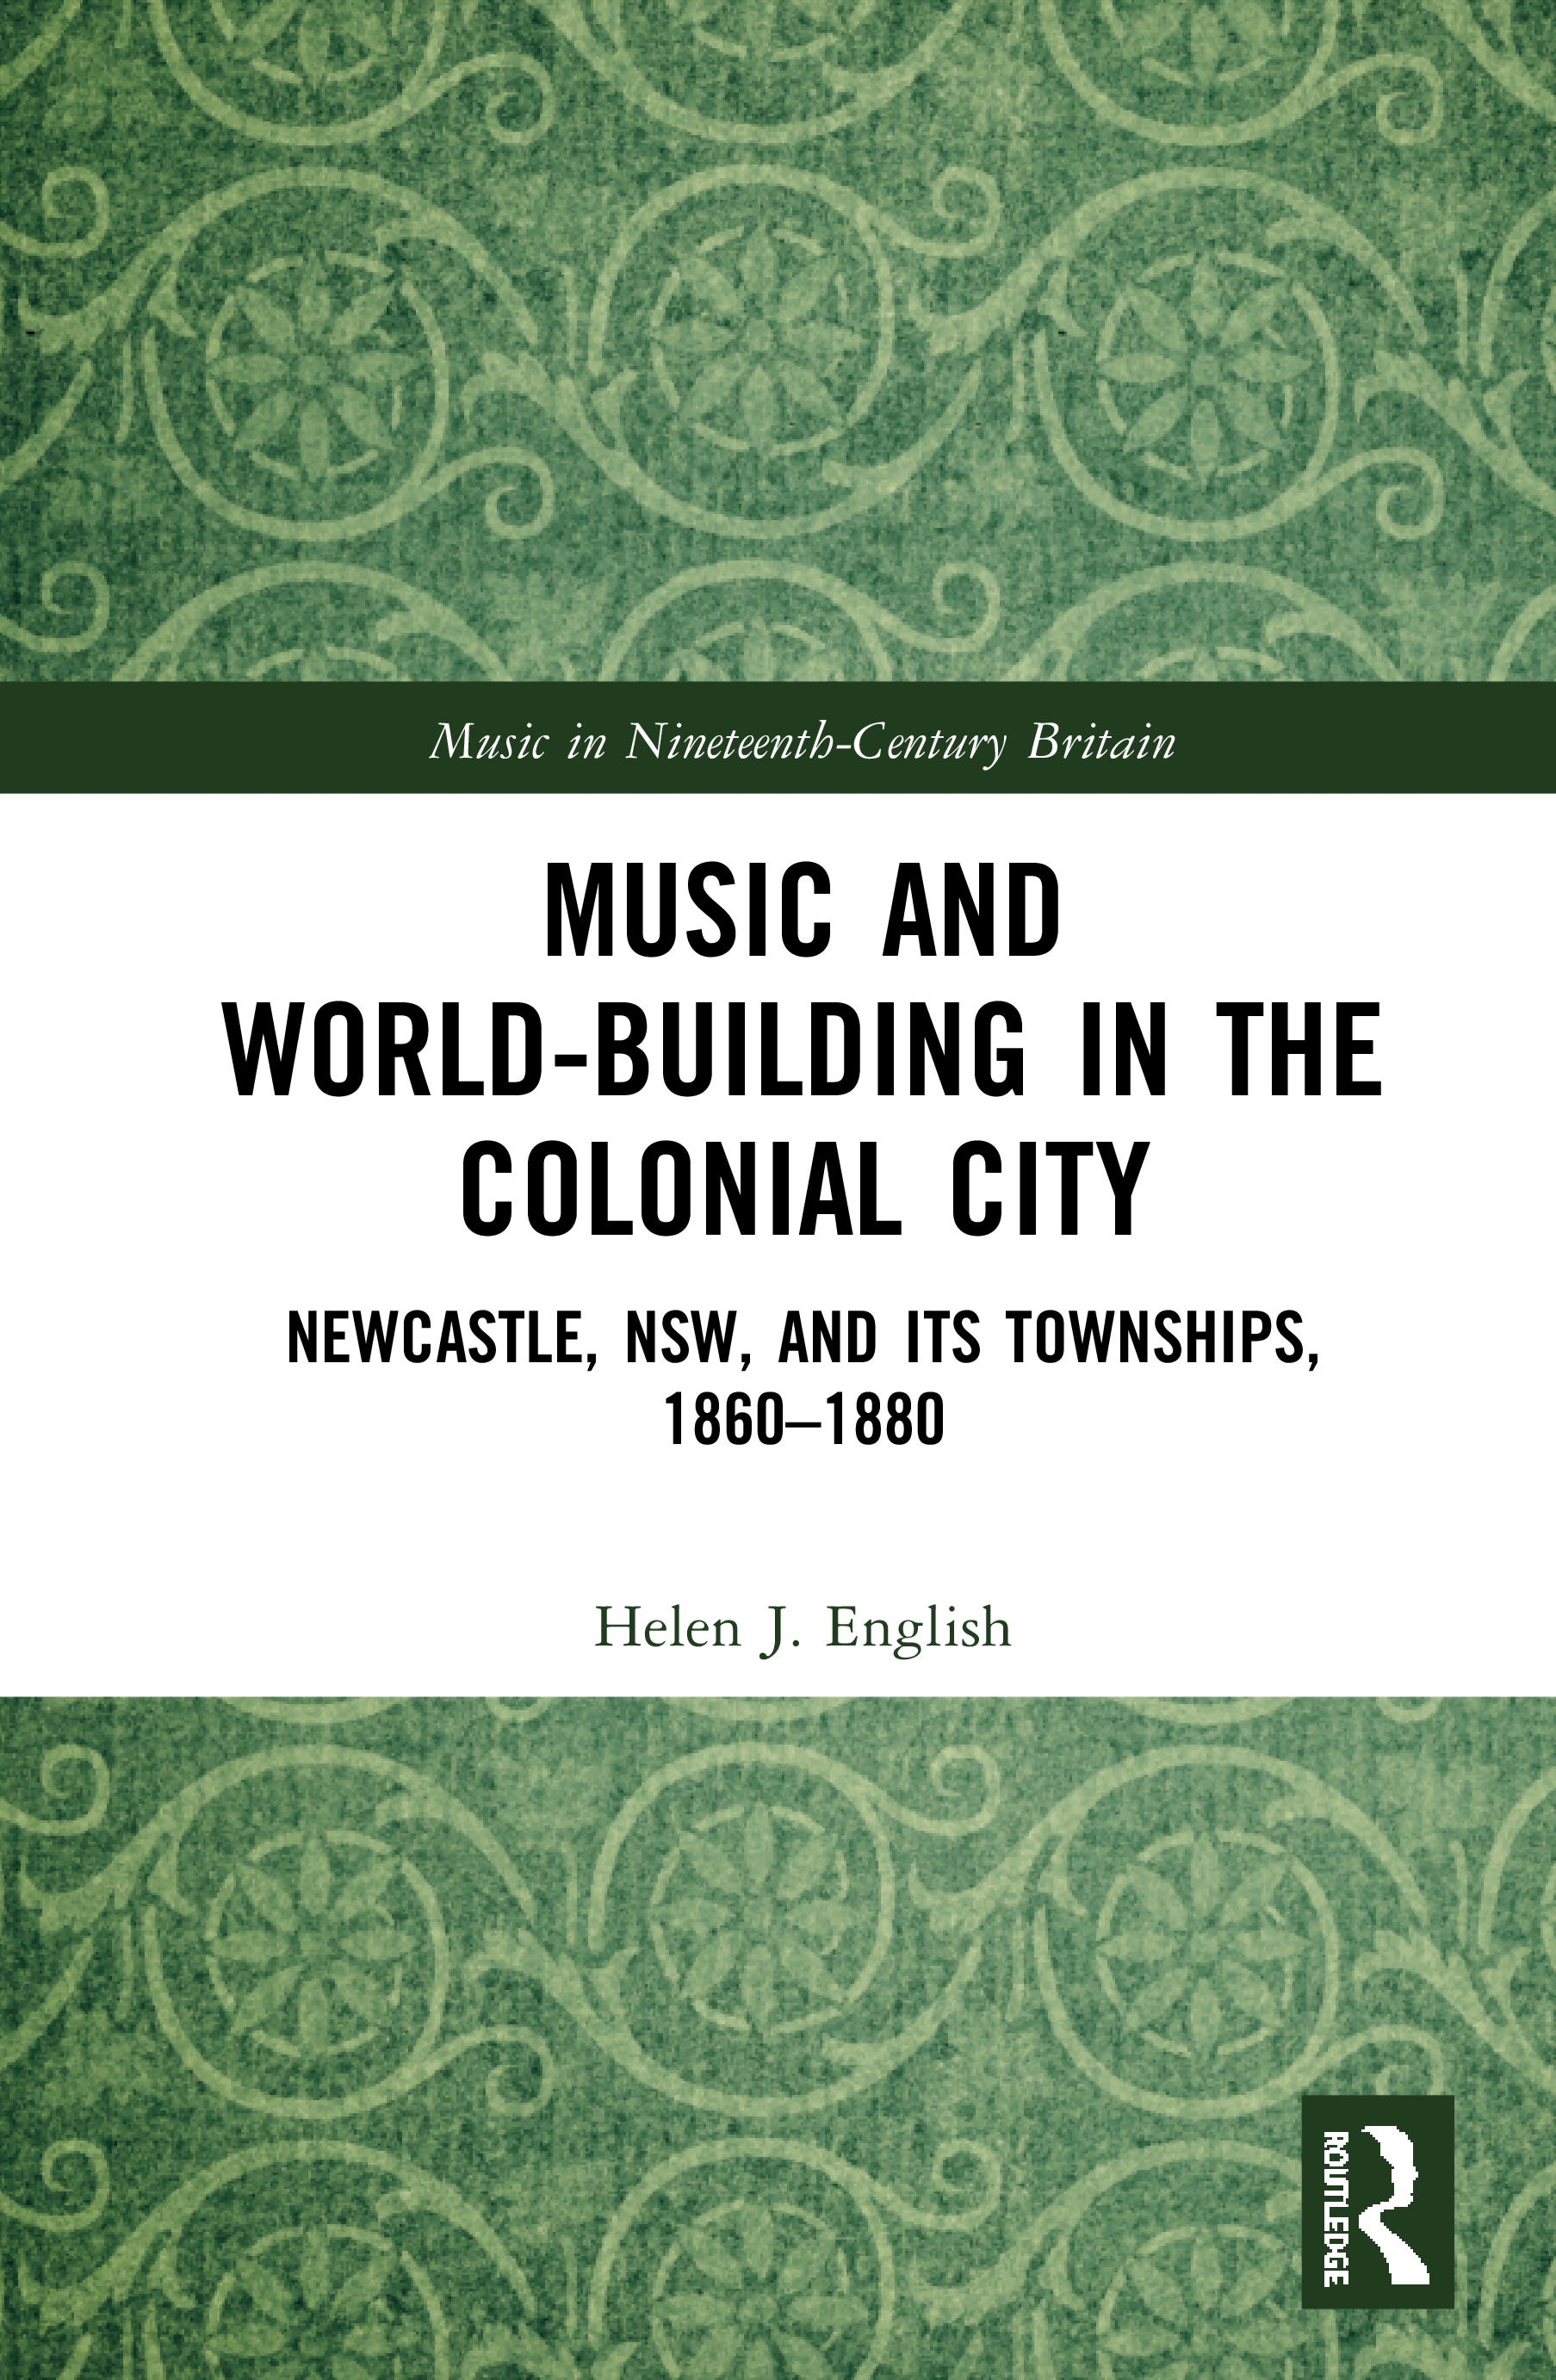 Music and World-Building in the Colonial City: Newcastle, NSW, and its Townships, 1860-1880, 1st Edition (Hardback) book cover